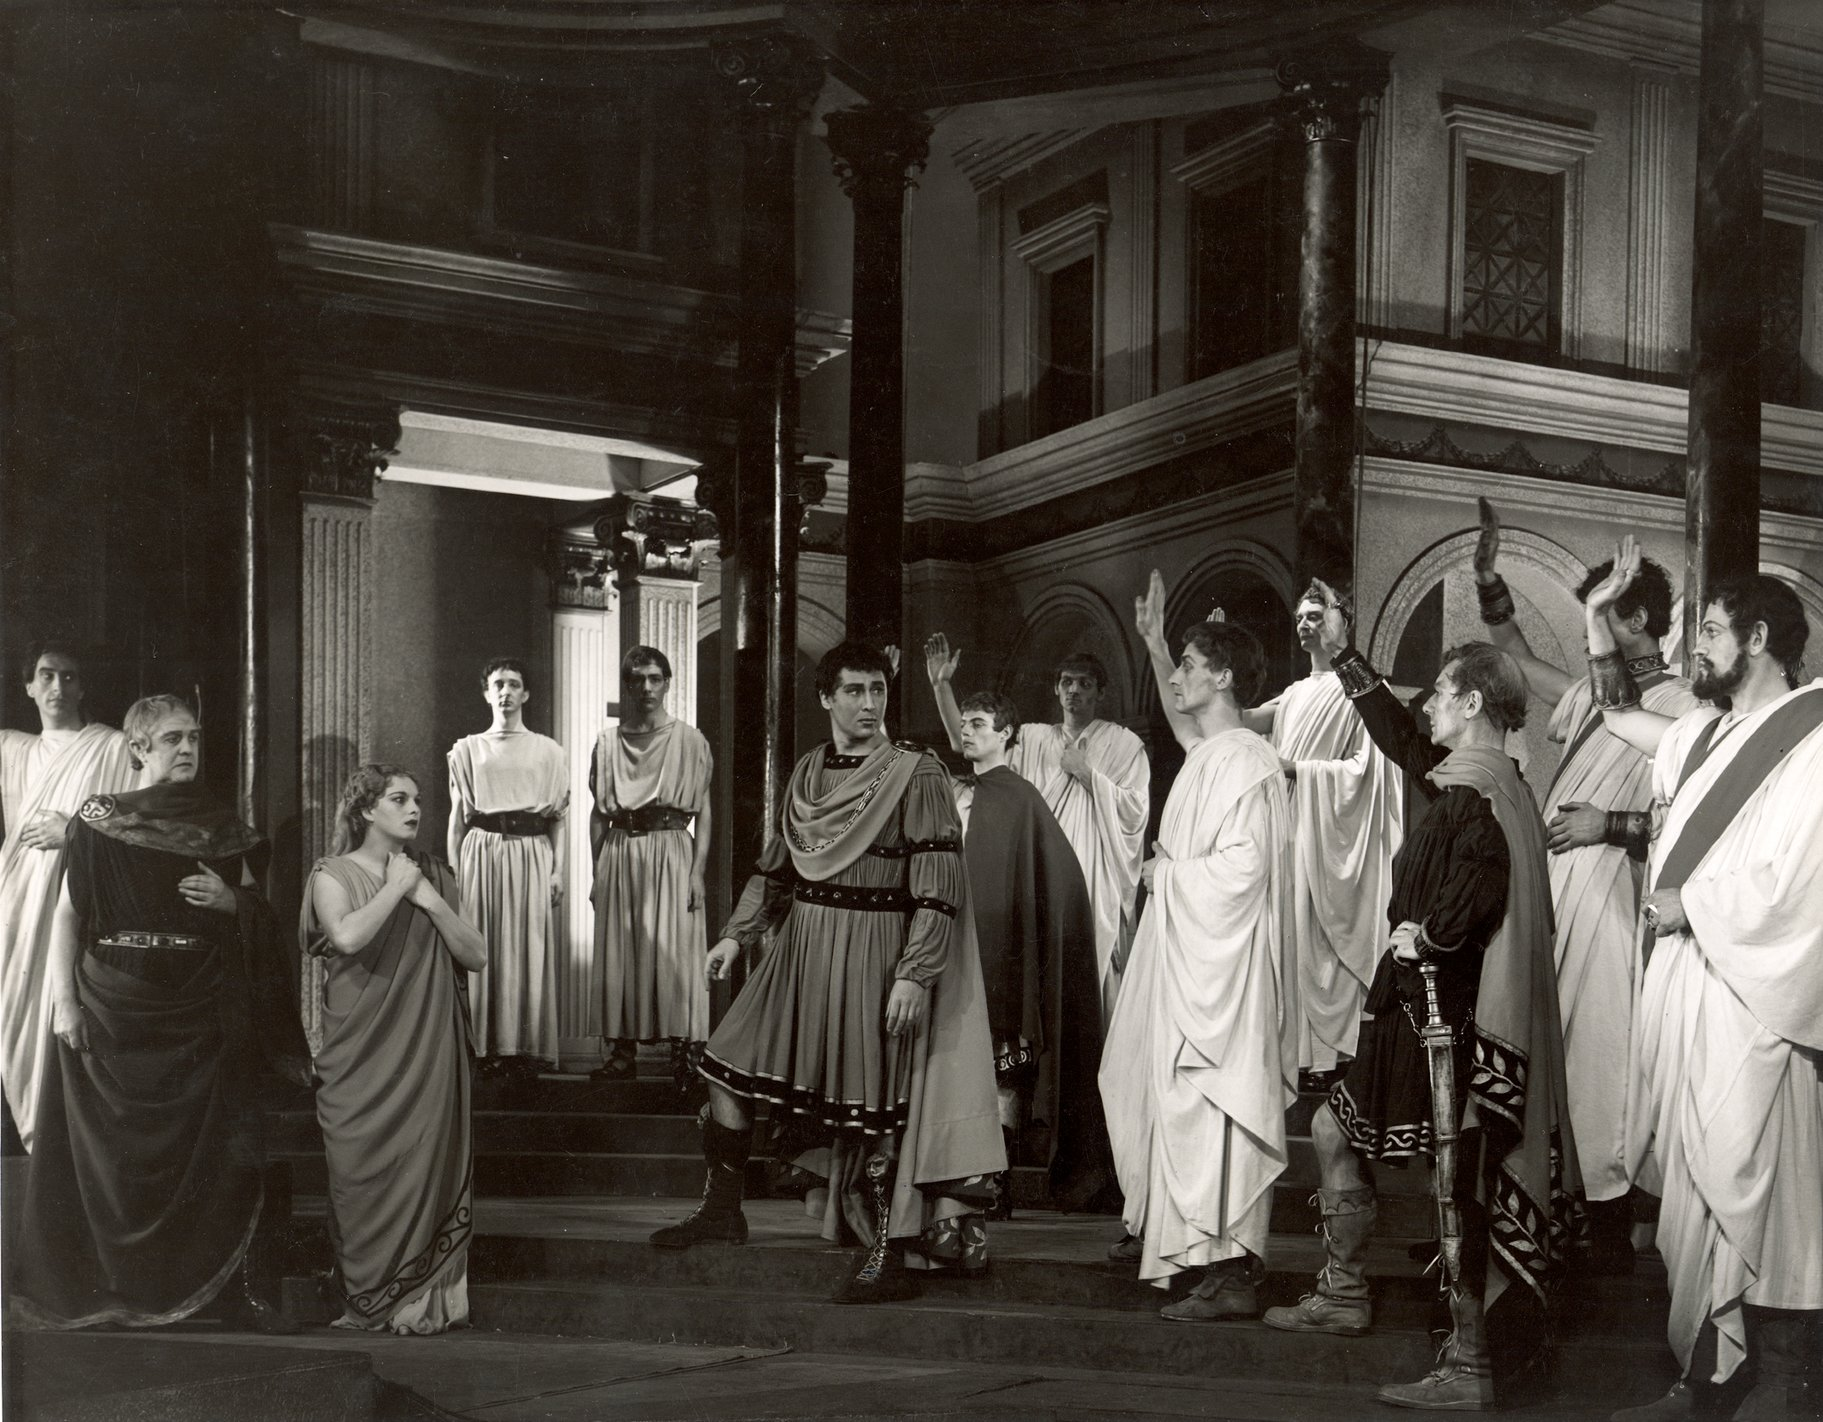 Citizens saute Julius Caesar during a parade through the streets of Rome